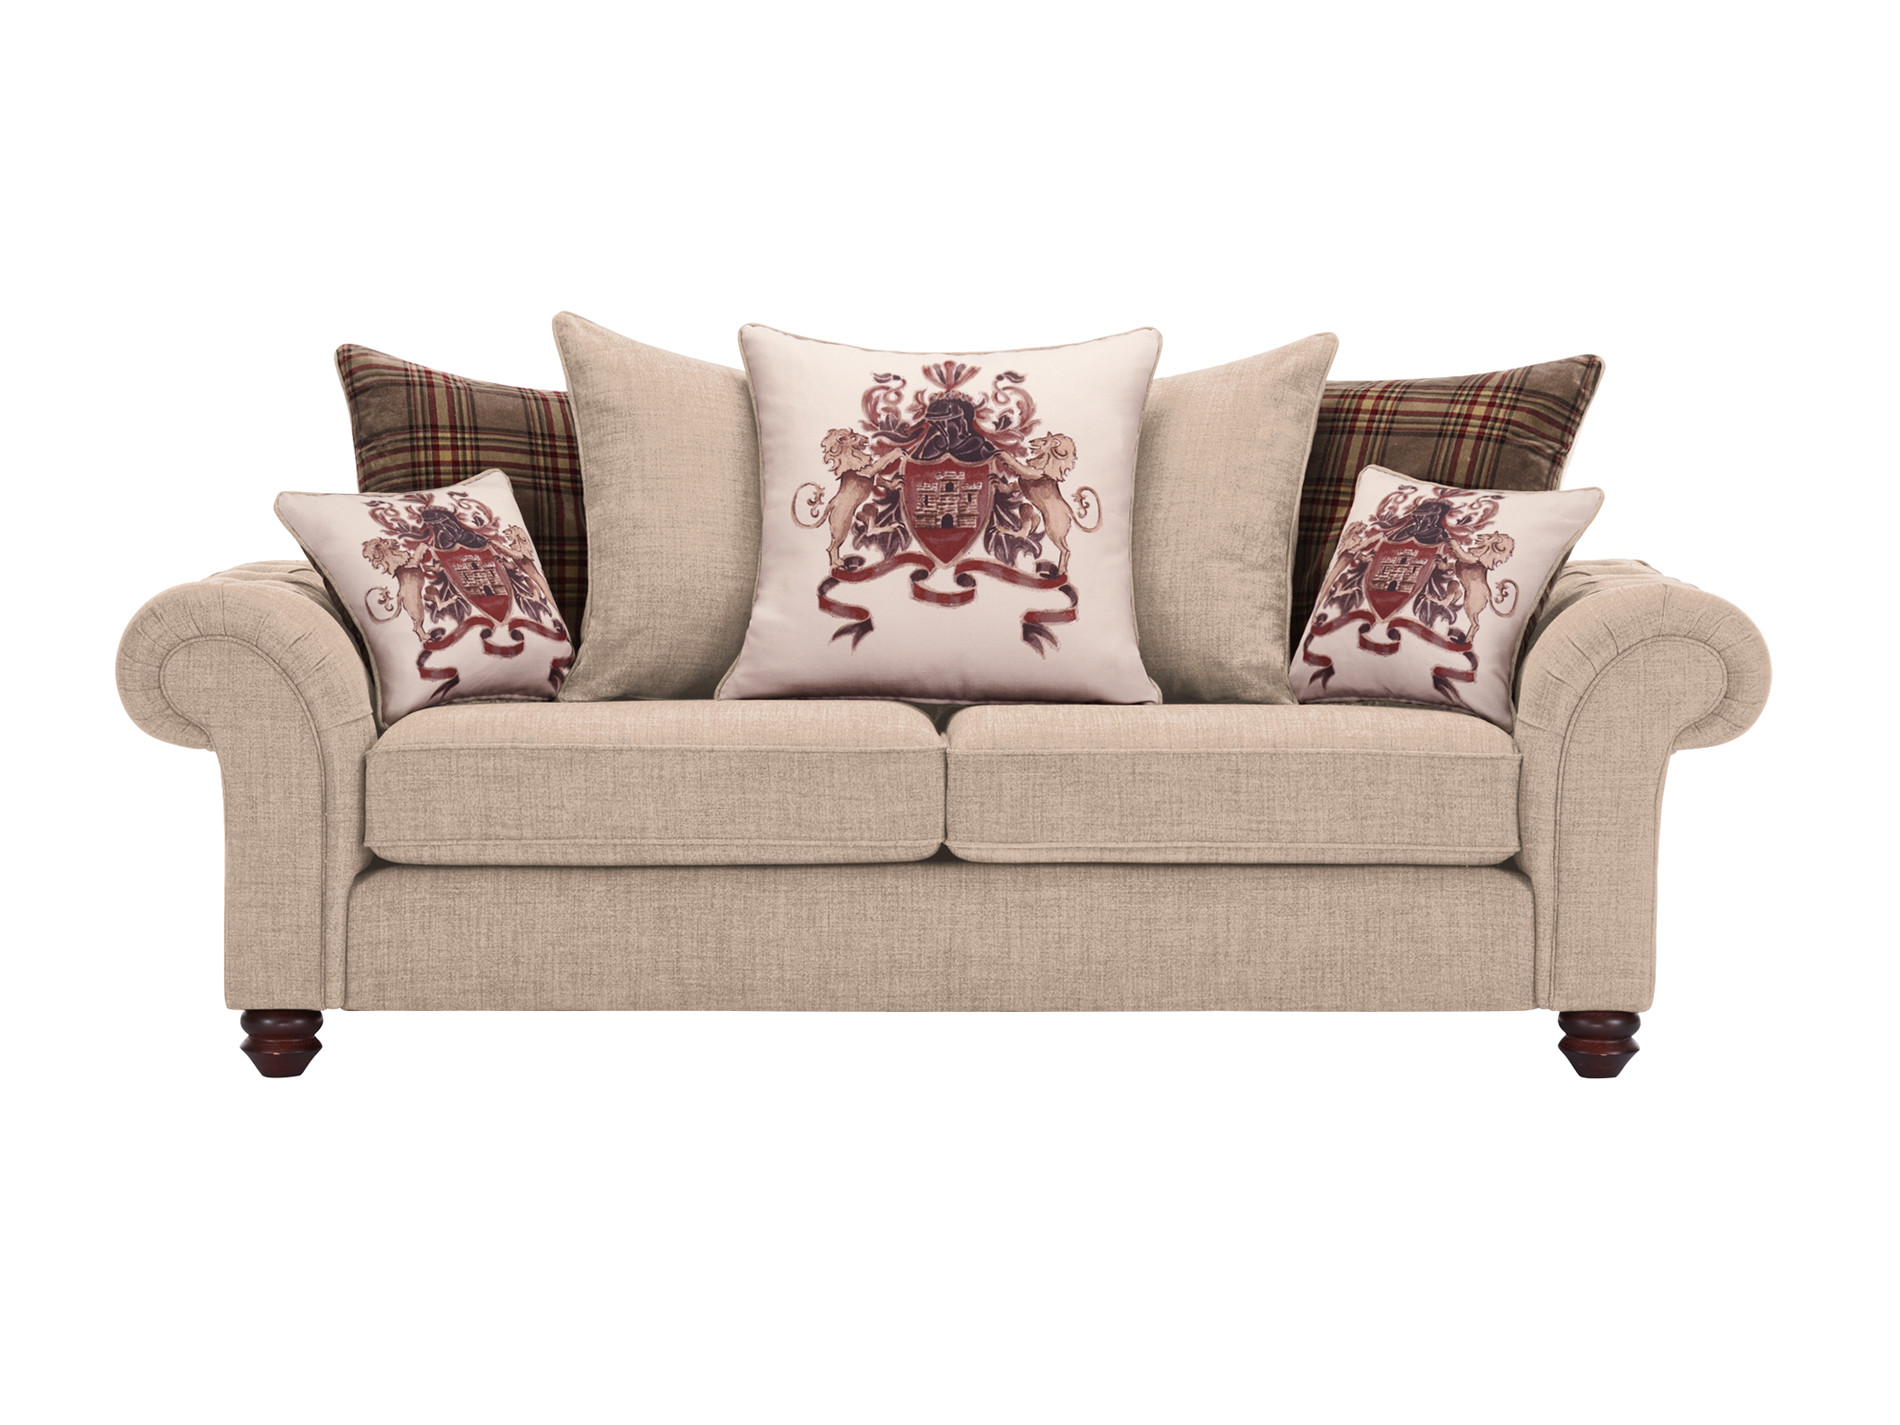 sandringham 3 seater pillow back sofa in beige with beige and brown scatters. Black Bedroom Furniture Sets. Home Design Ideas